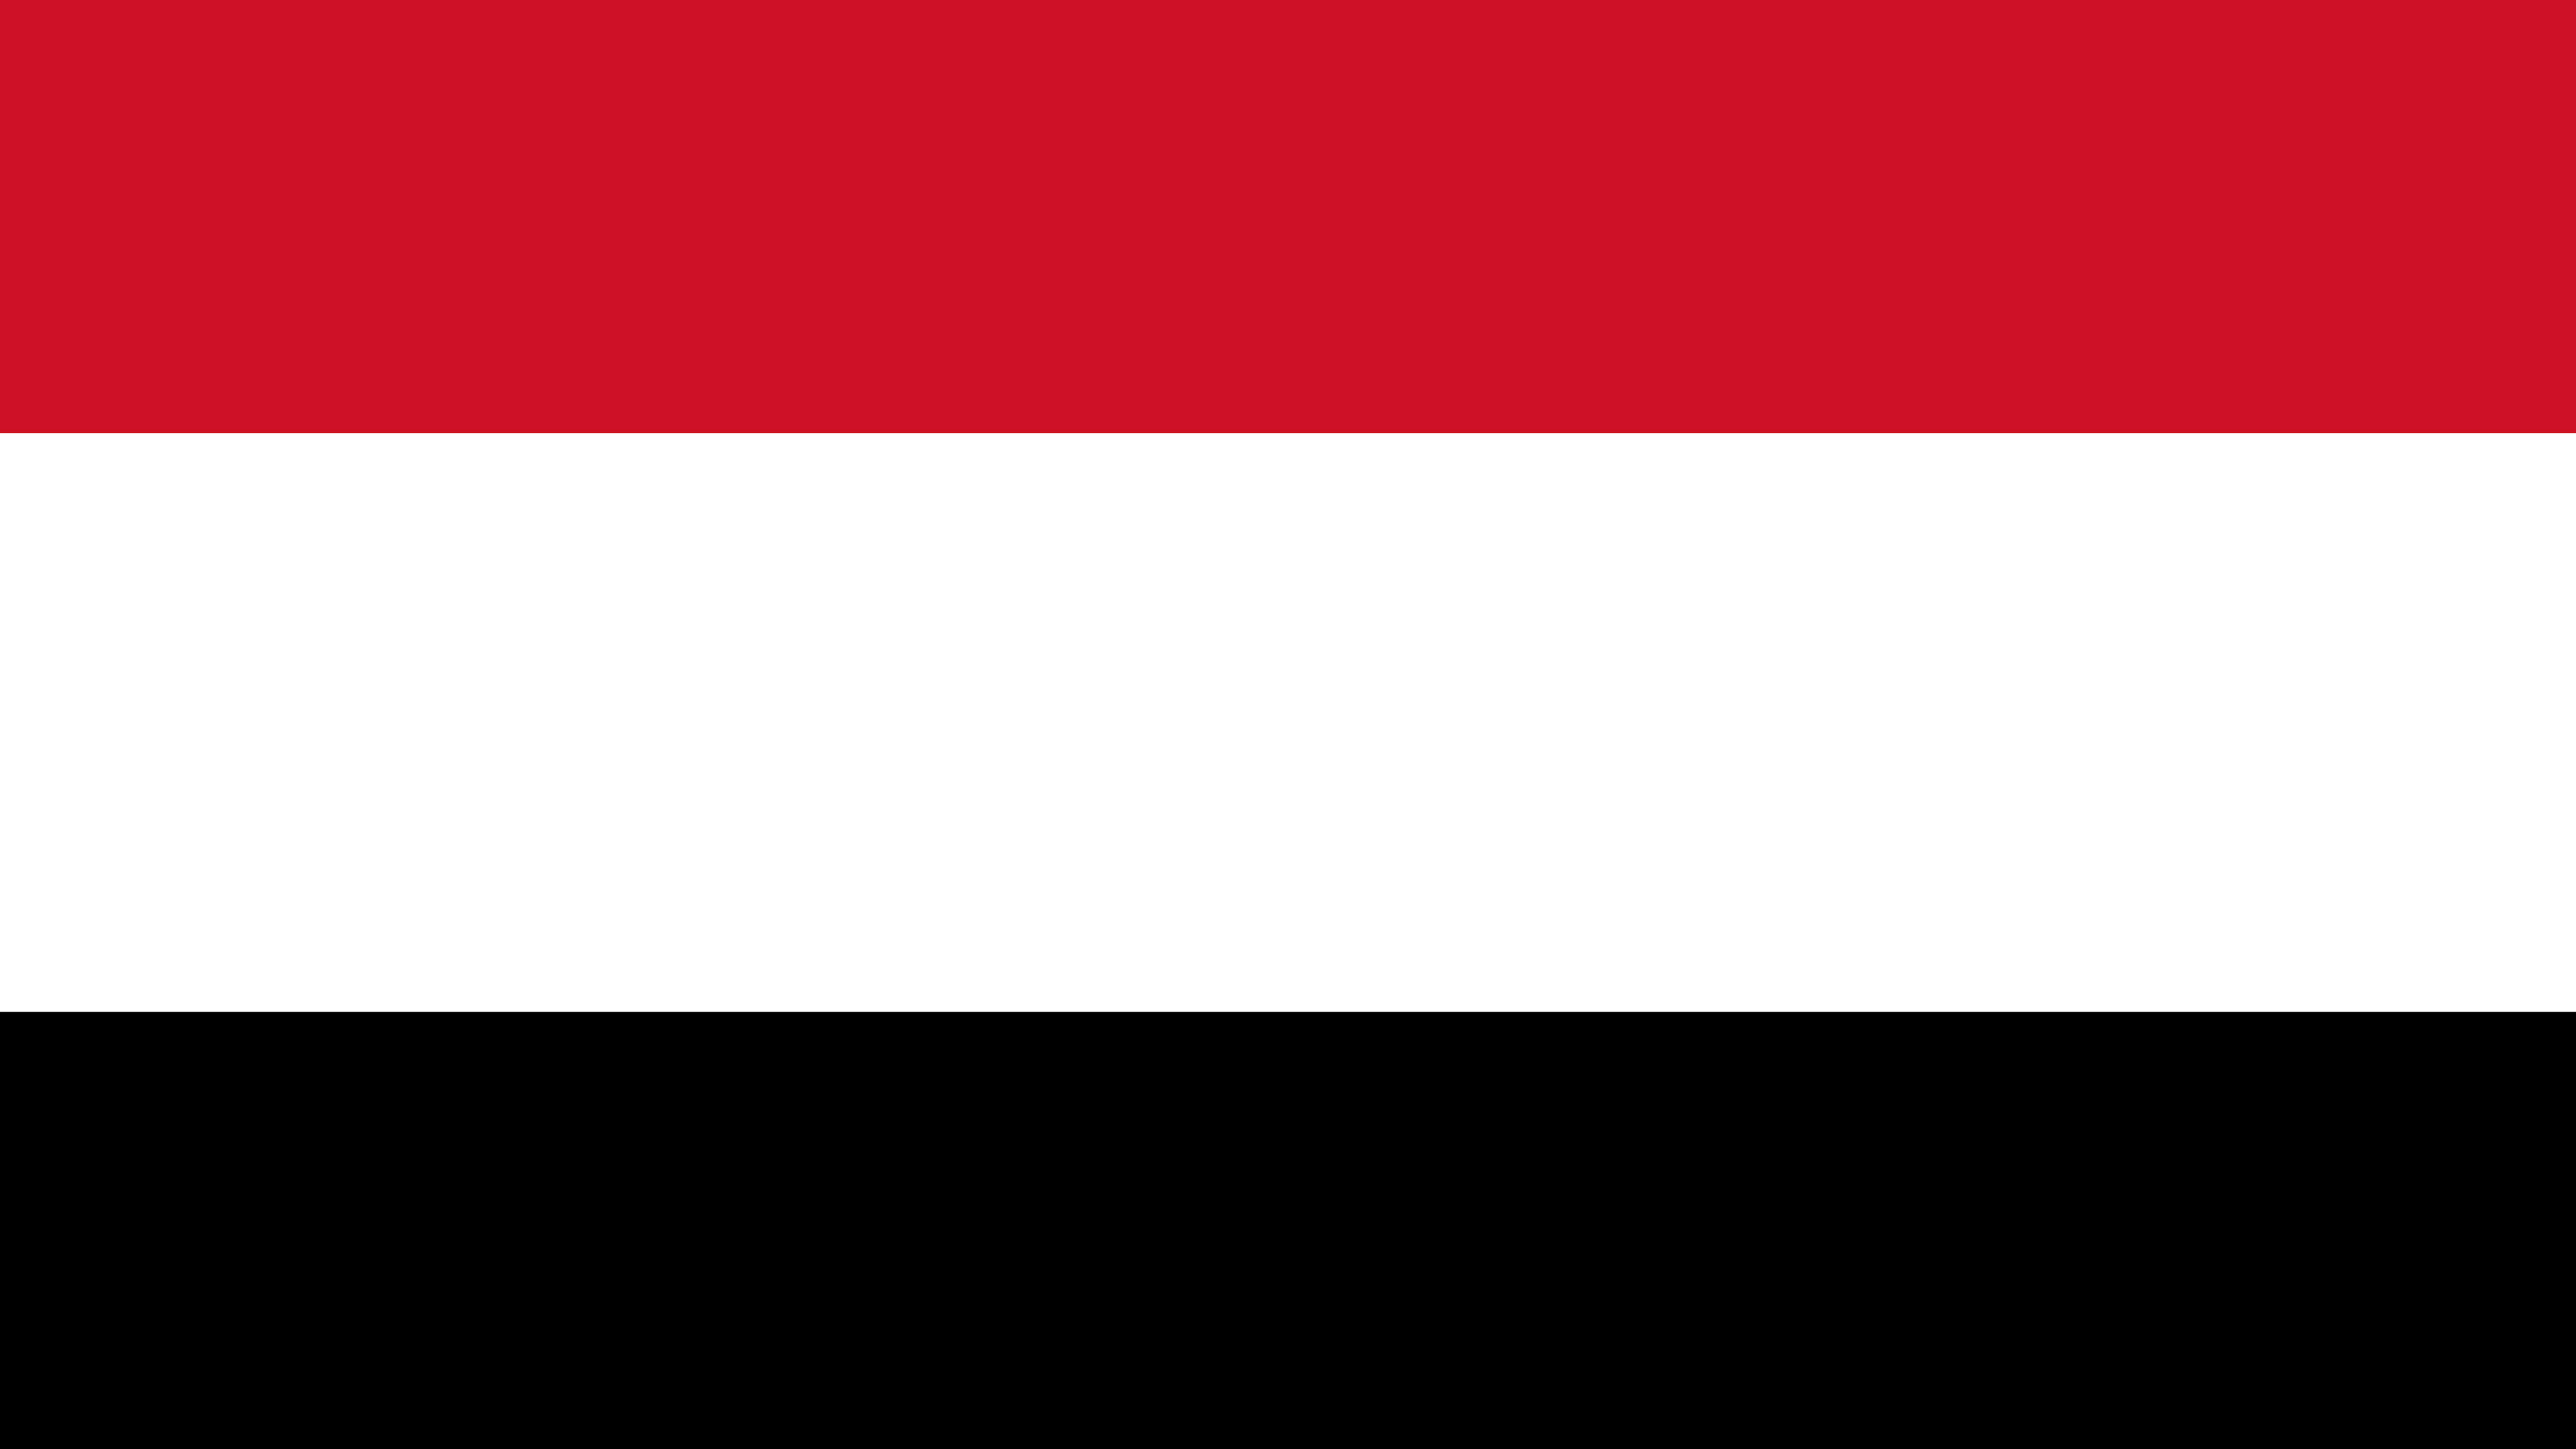 yemen flag uhd 4k wallpaper